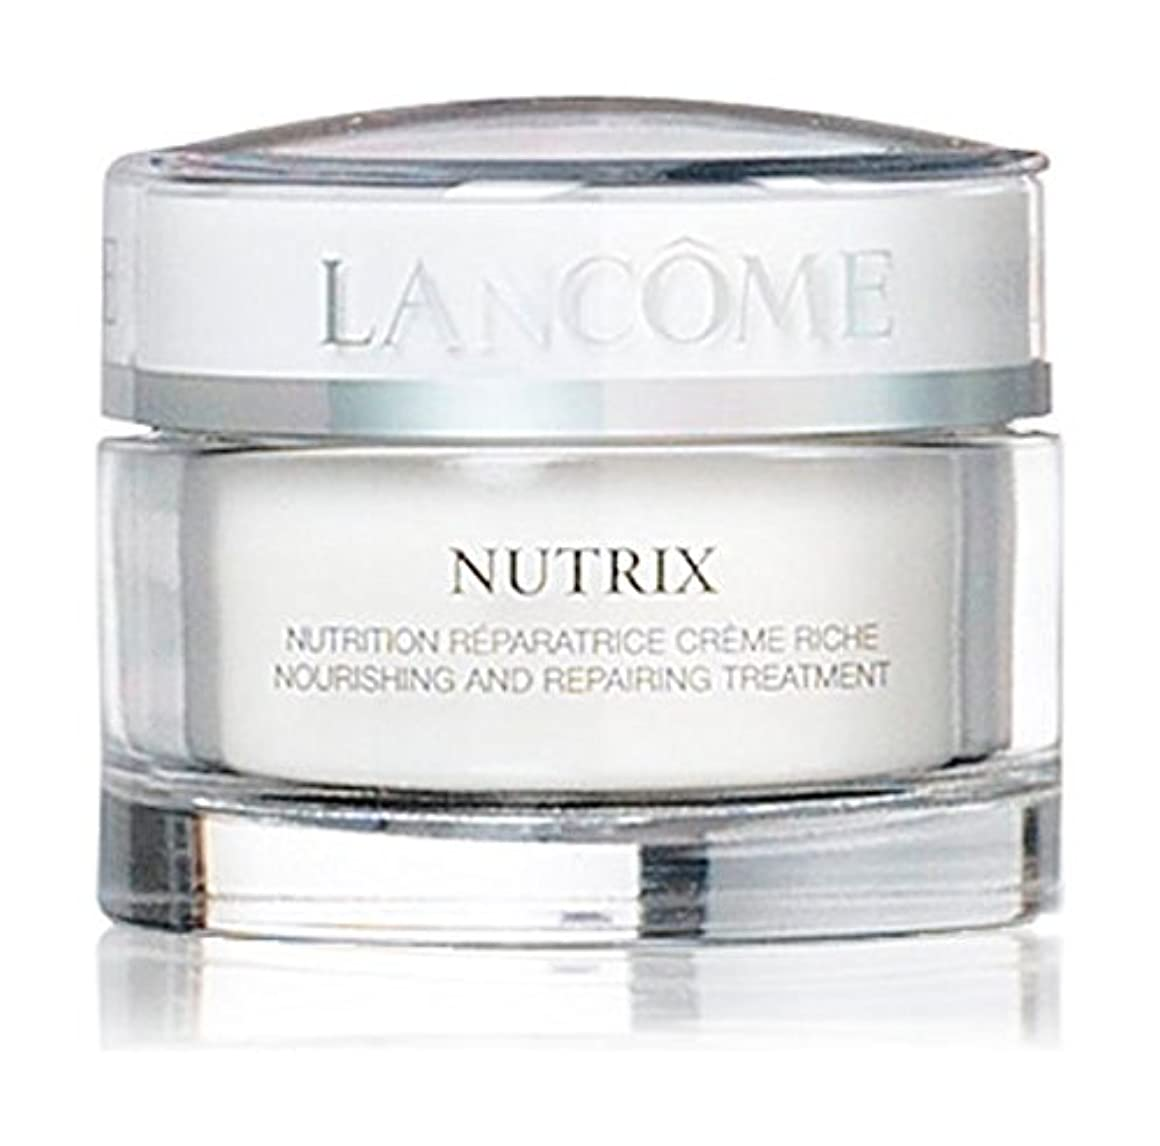 実質的私たち自身休みランコム Nutrix Nourishing And Repairing Treatment Rich Cream - For Very Dry, Sensitive Or Irritated Skin 50ml/1.7oz...